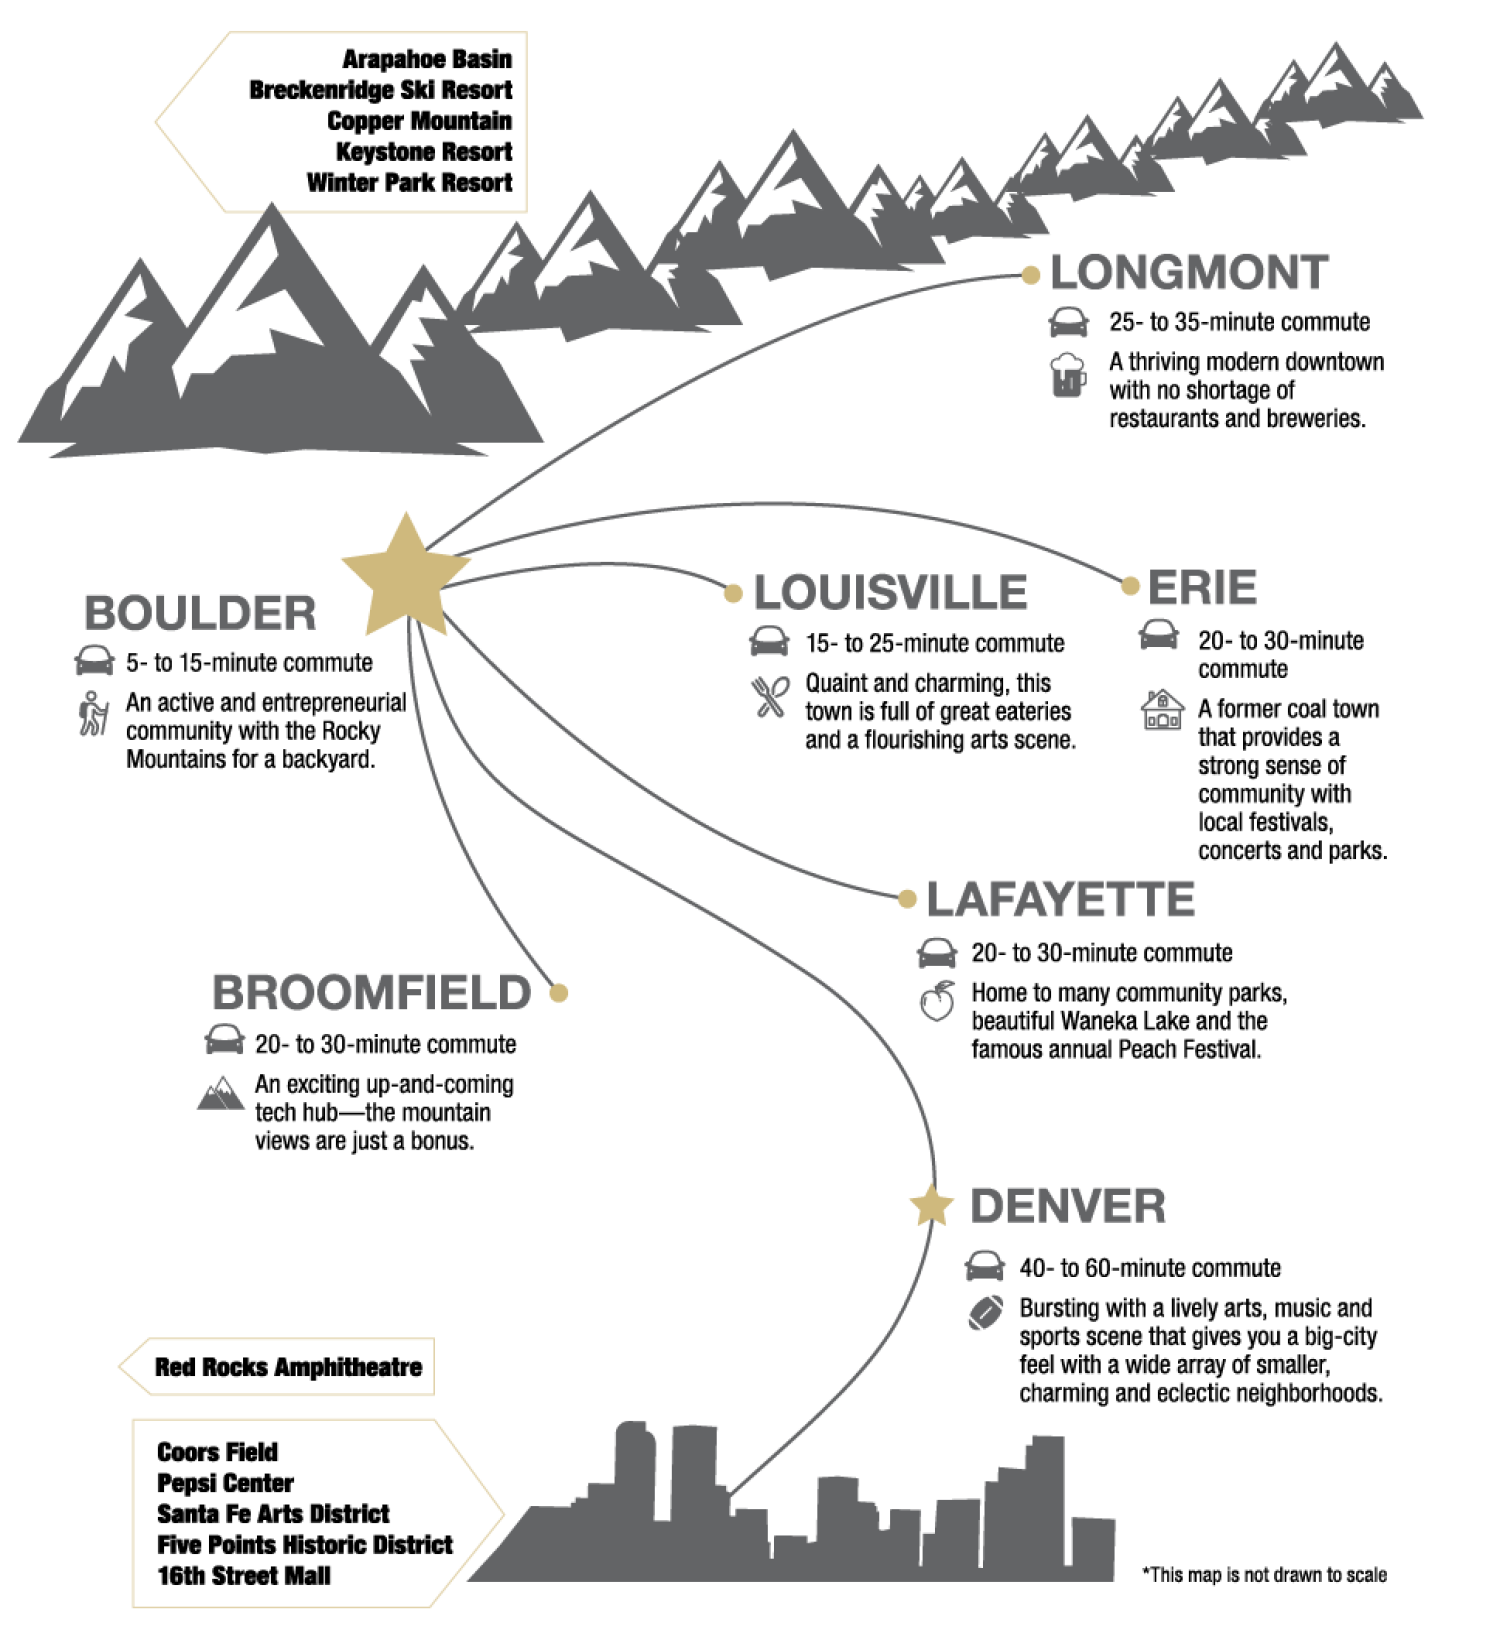 Map of Boulder and Surrounding Areas